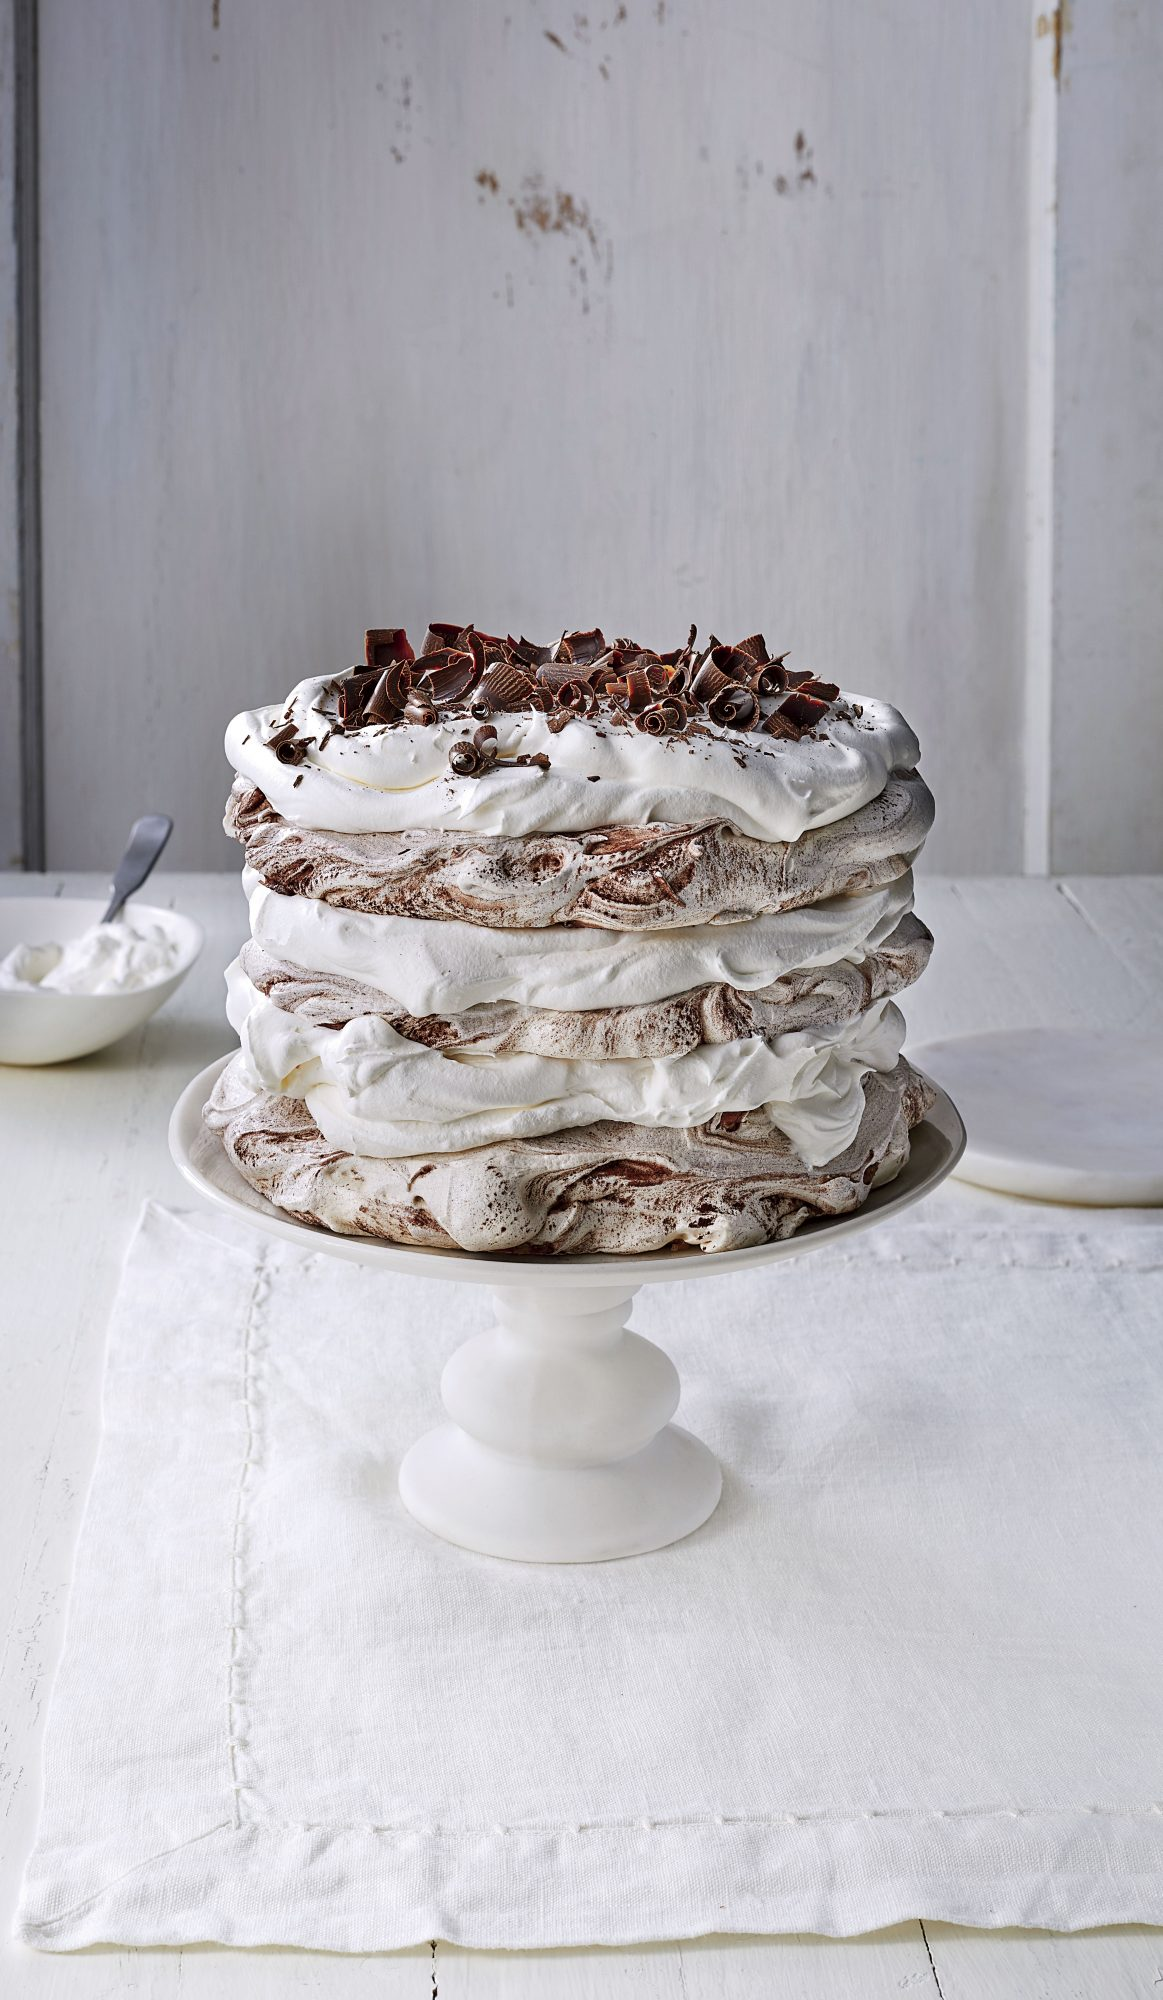 Chocolate-Coconut Pavlova Cake